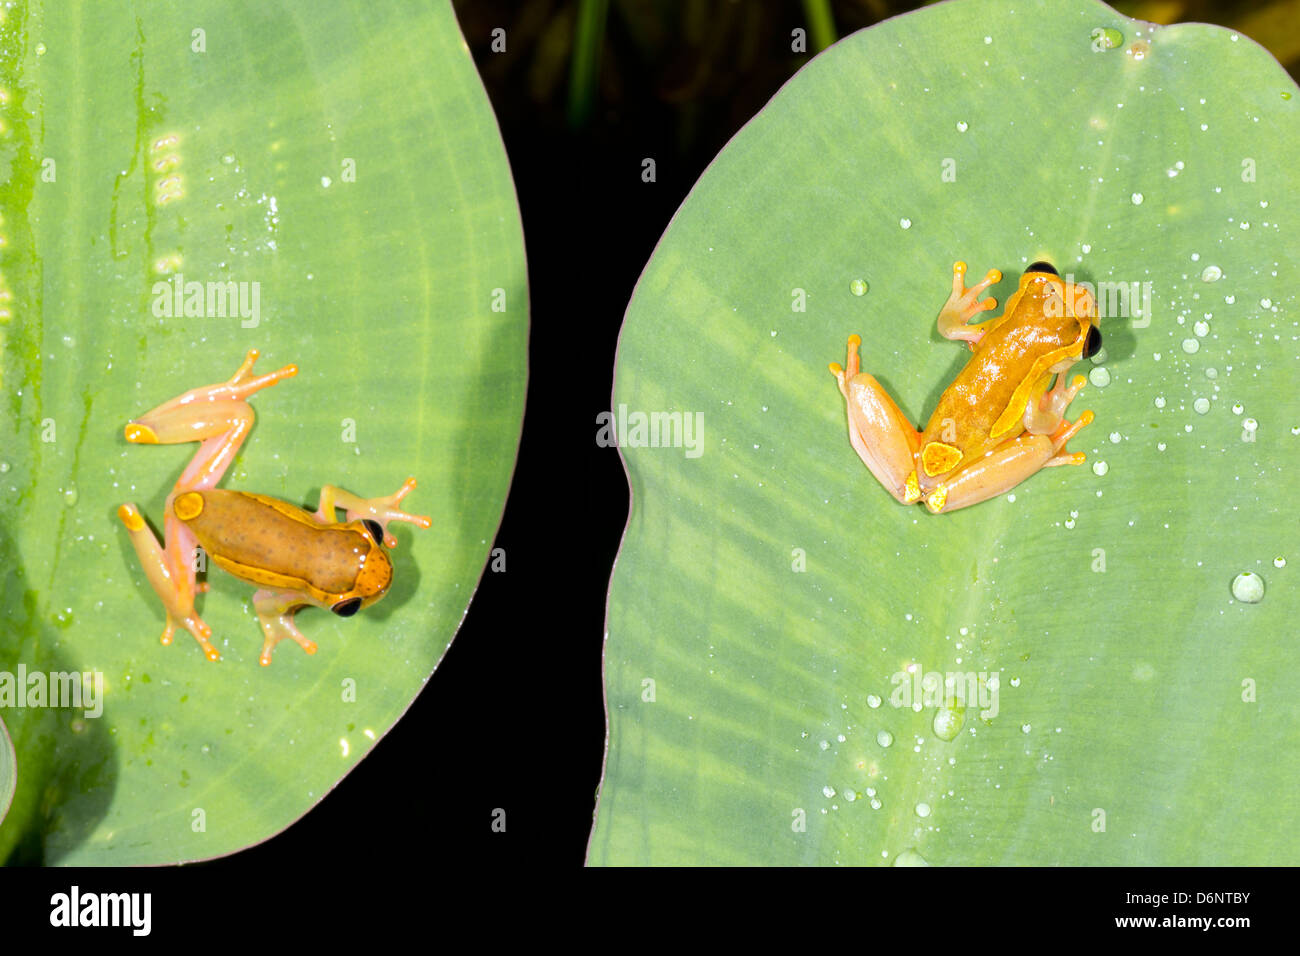 Two Upper Amazon Treefrogs (Dendropsophus bifurcus) on water hyacinth leaves above a rainforest pond, Ecuador. - Stock Image